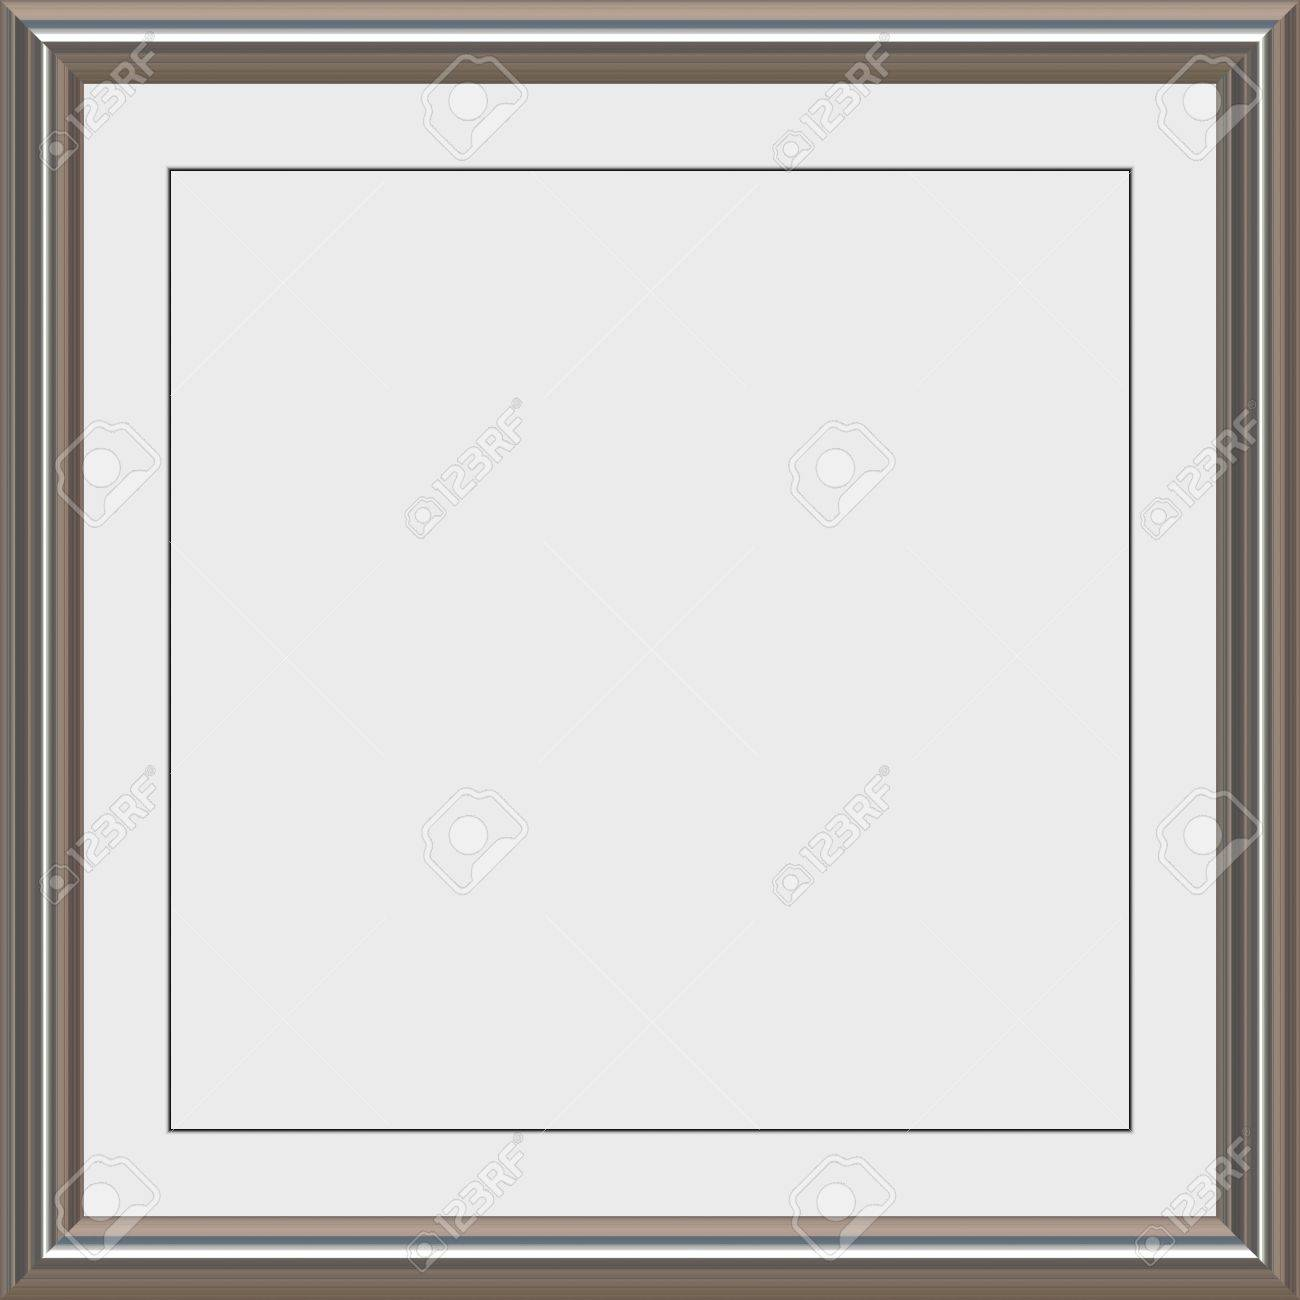 Shiny Metal Frame With White Matte For Certificates, Awards Or ...